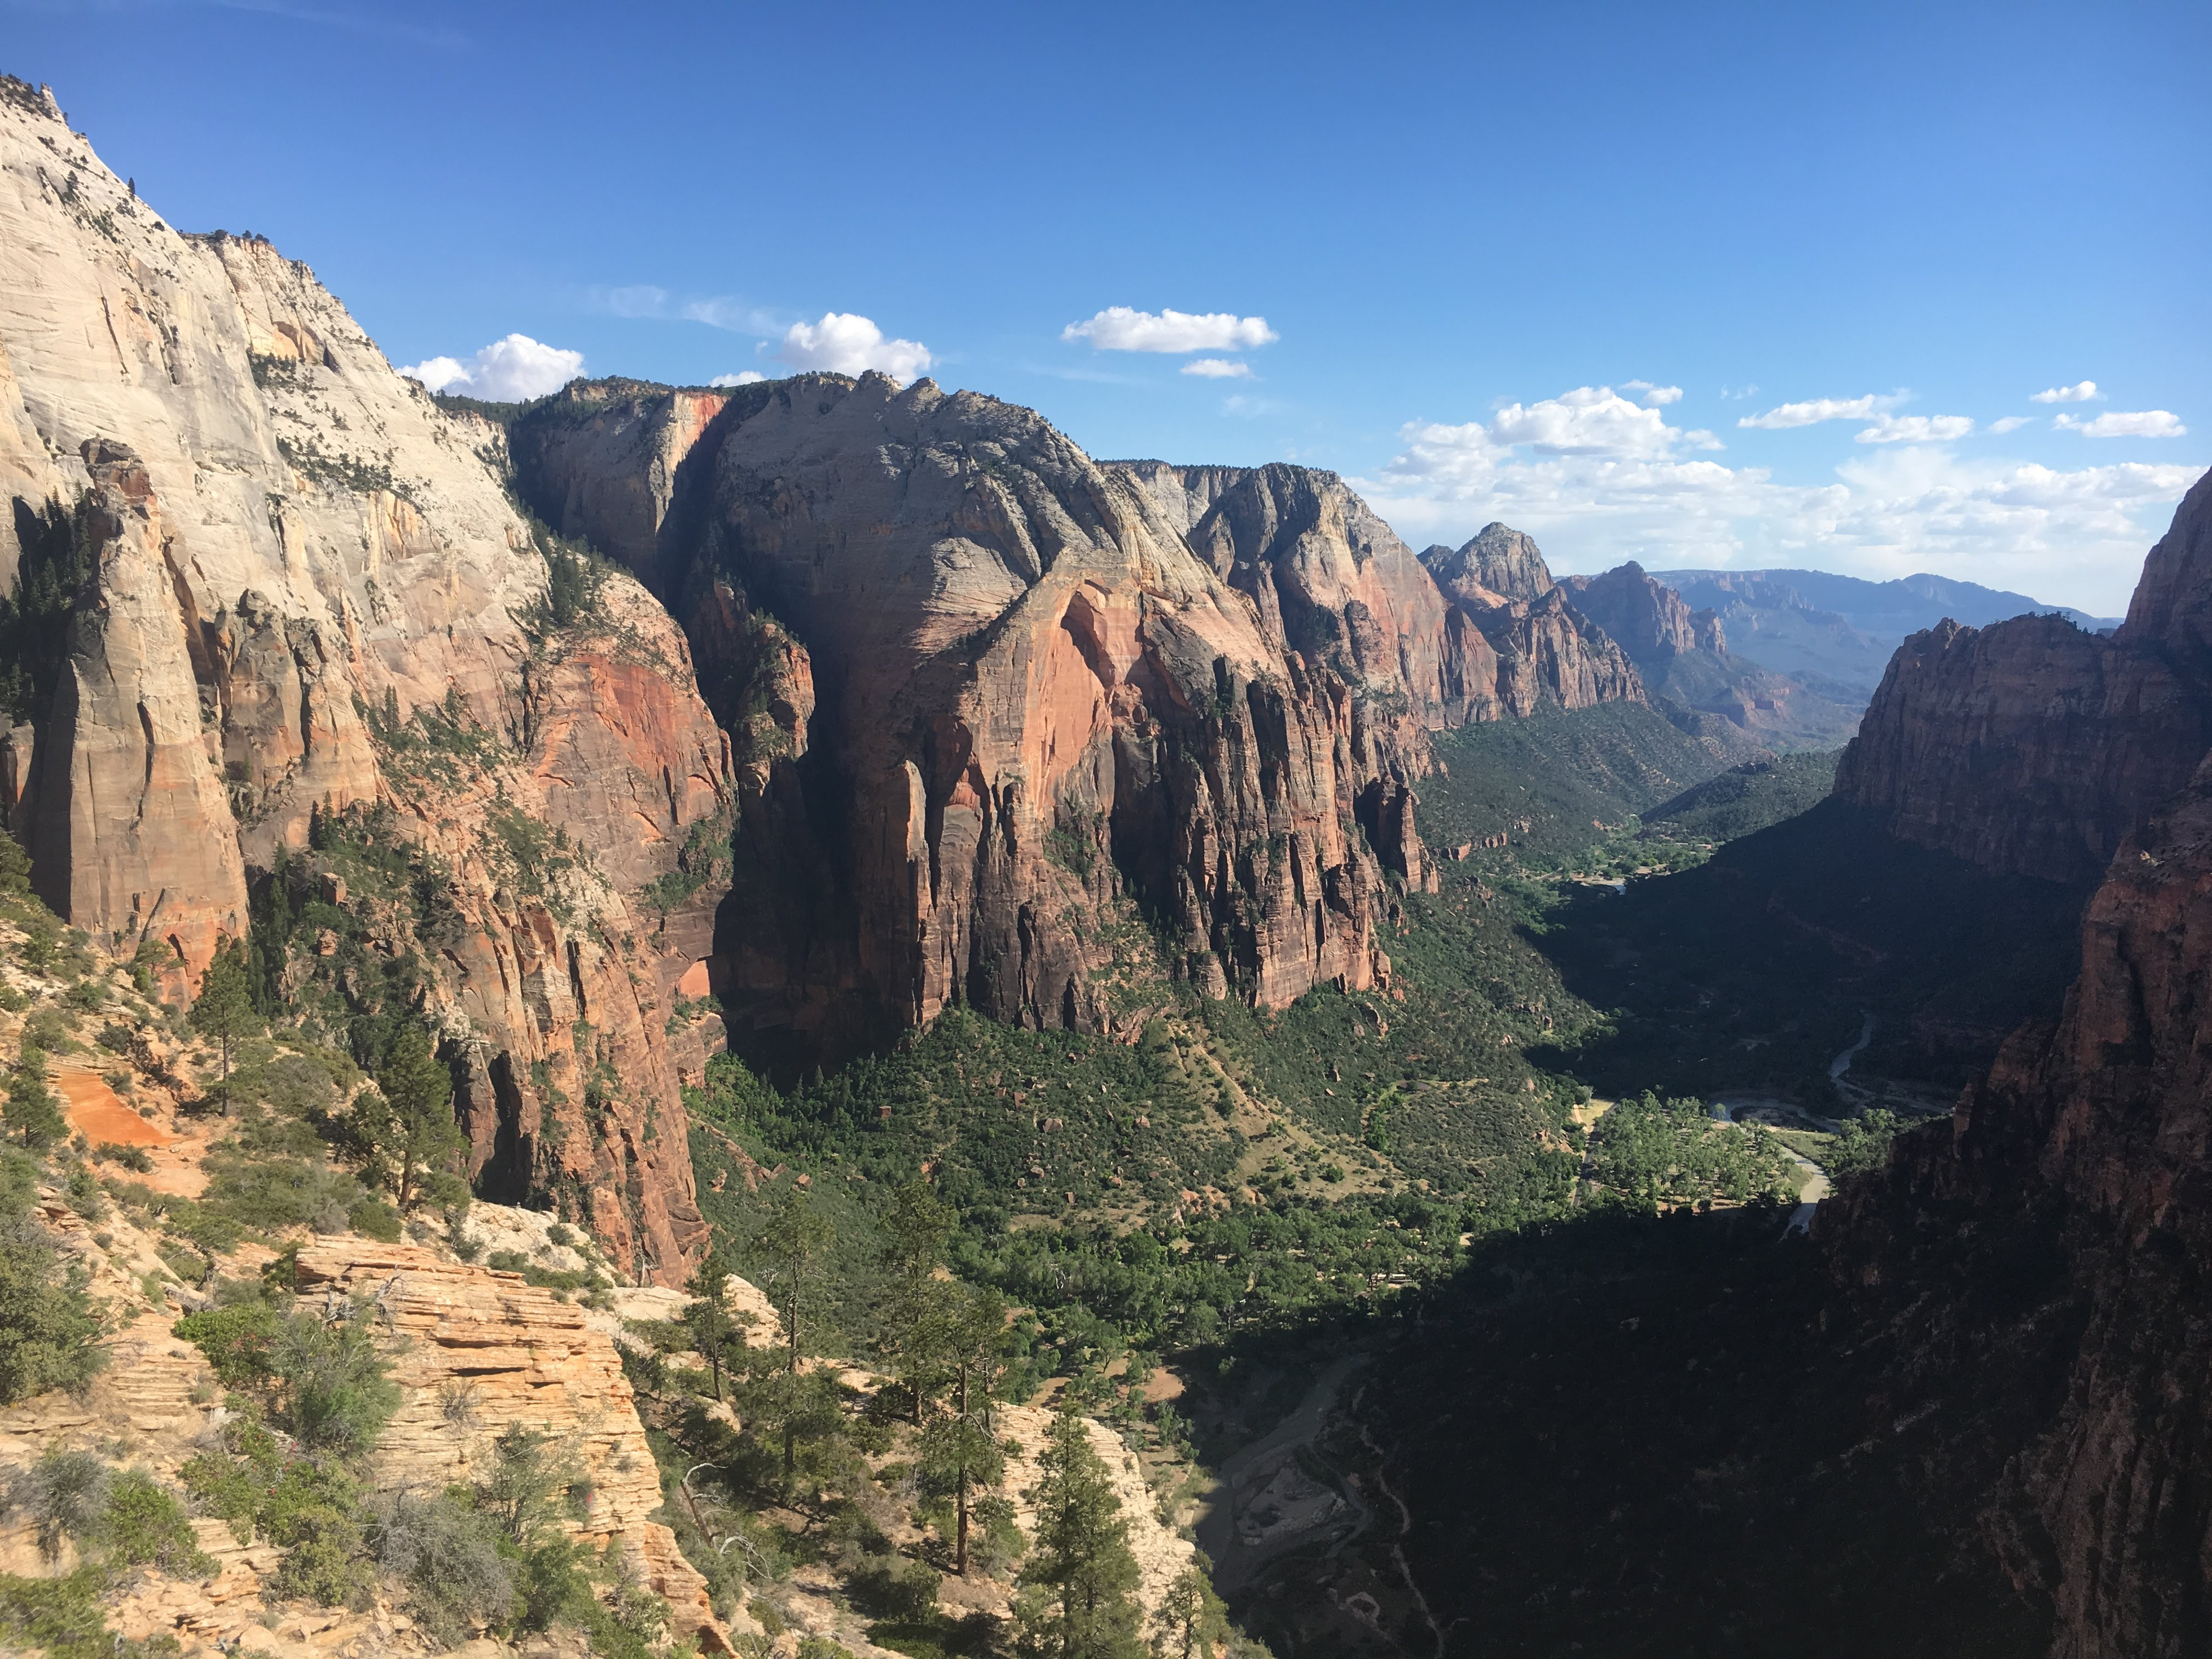 The main canyon of Zion